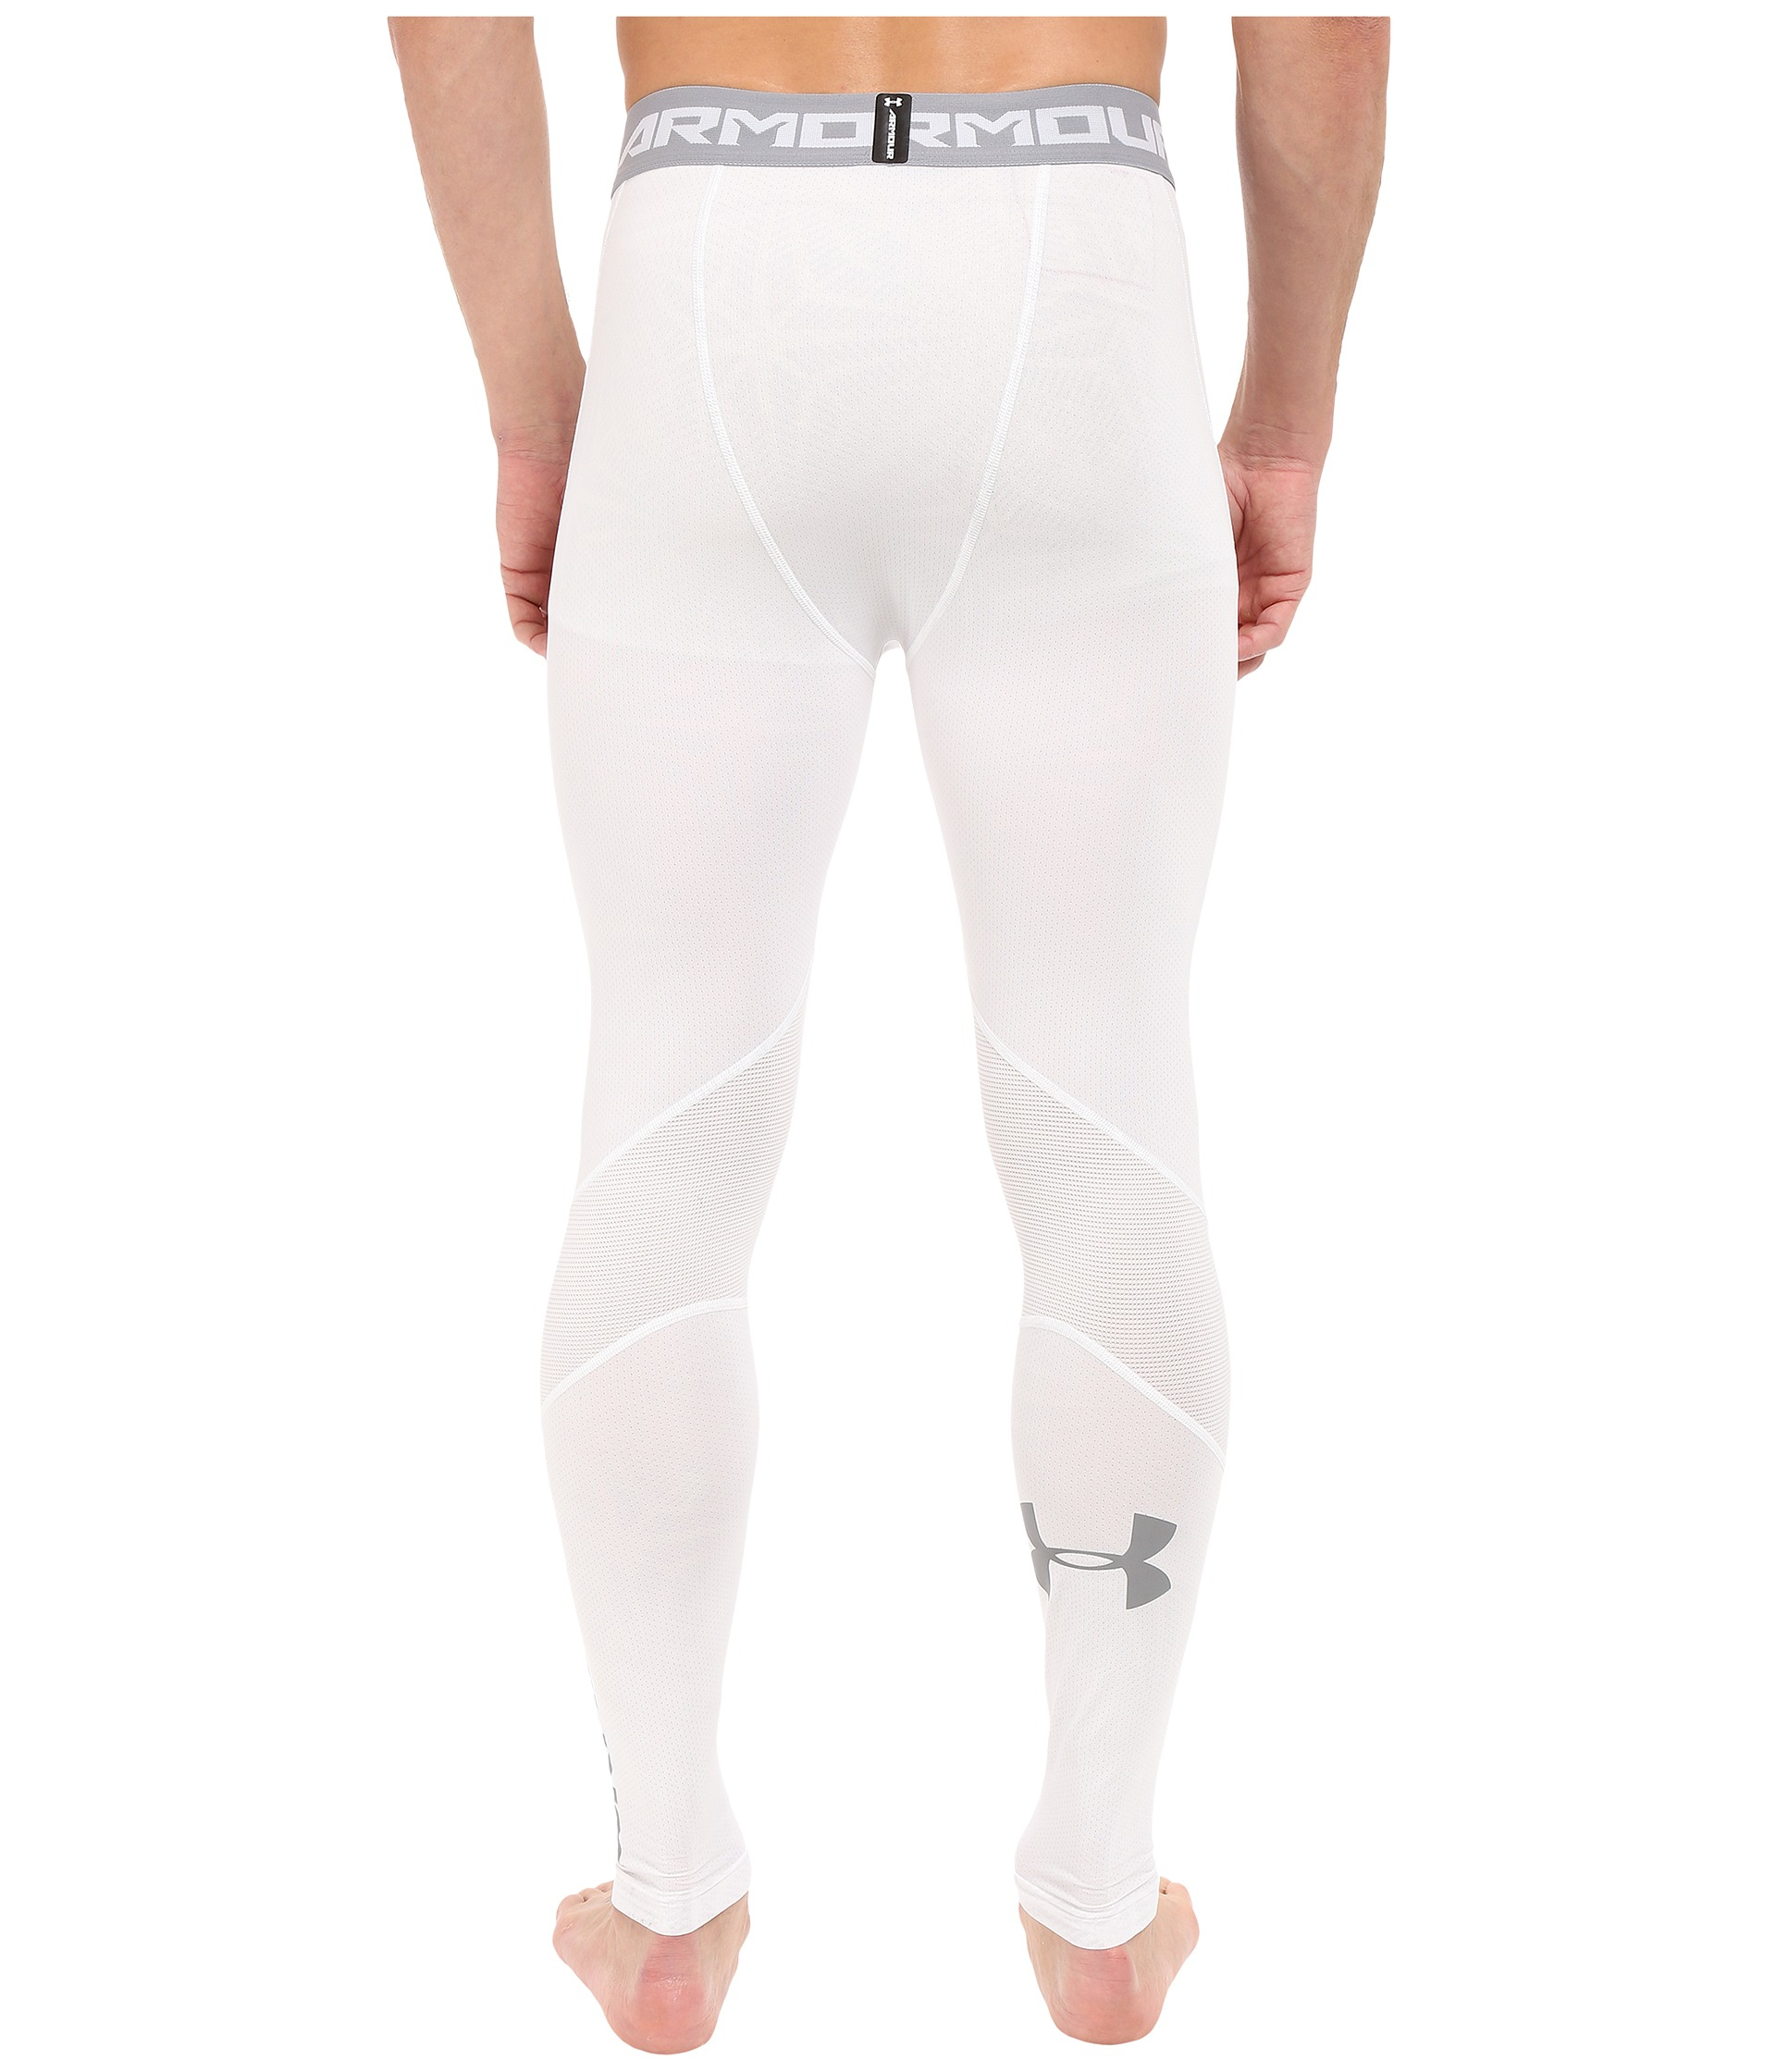 06293010a6069 Under Armour Ua Heatgear® Coolswitch Compression Leggings in White for Men  - Lyst